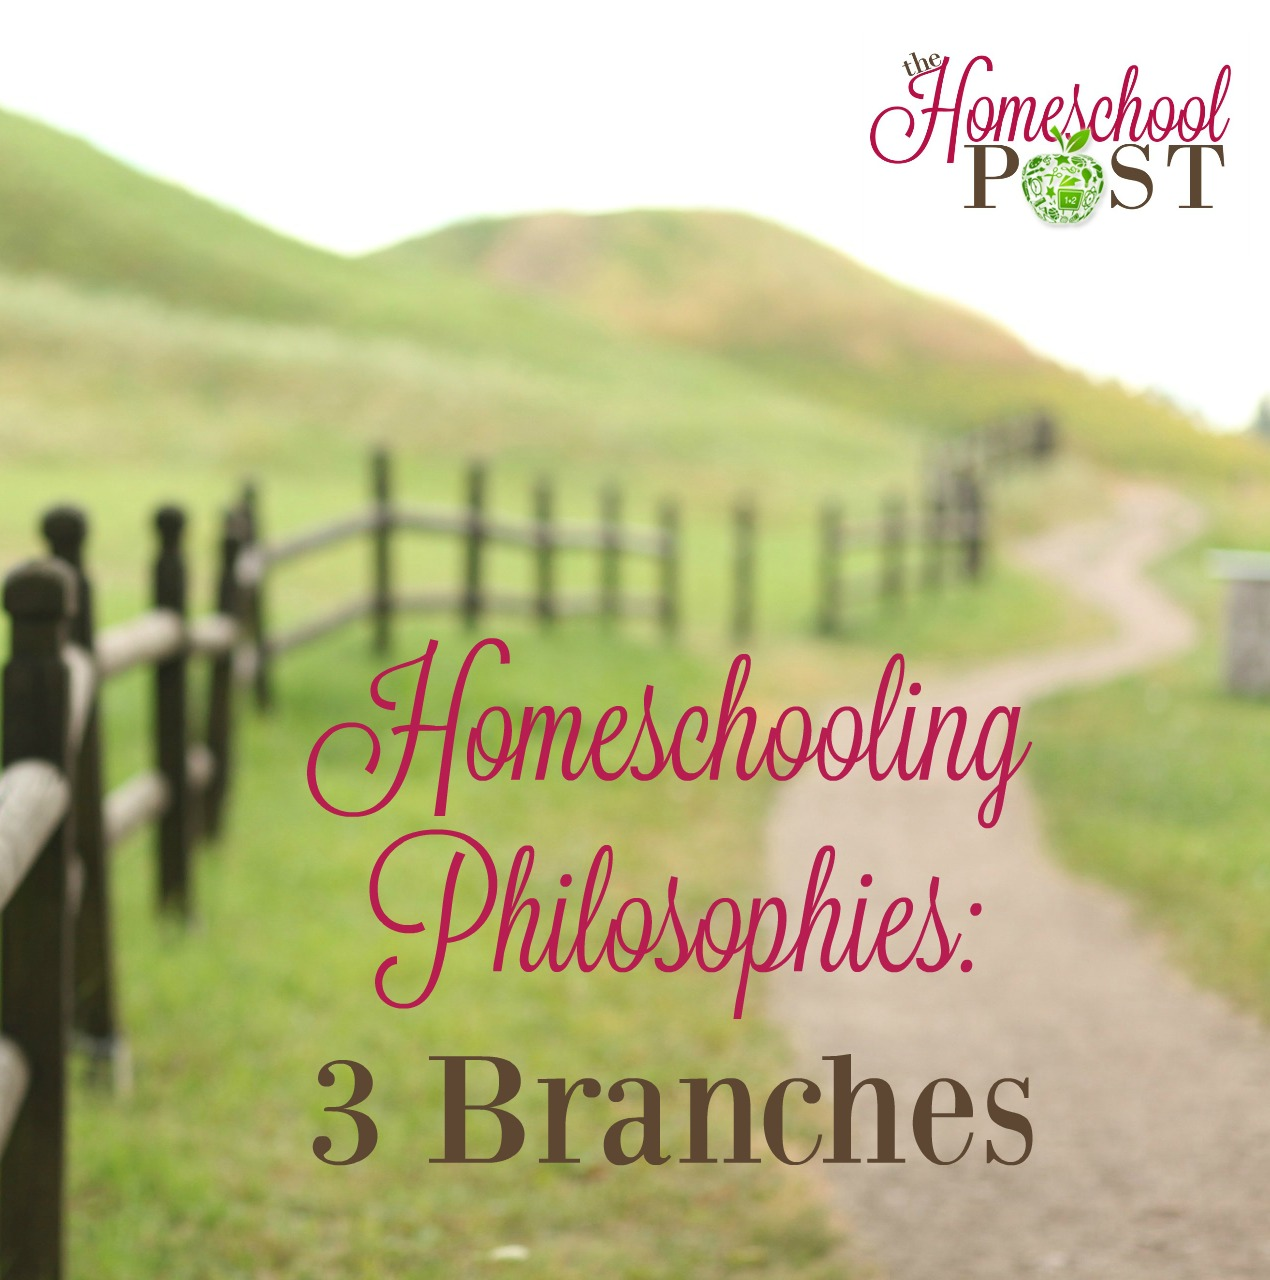 An overview of the 3 branches of philosophy as they apply to your own homeschooling philosophy and how you teach your children. hsbapost.com